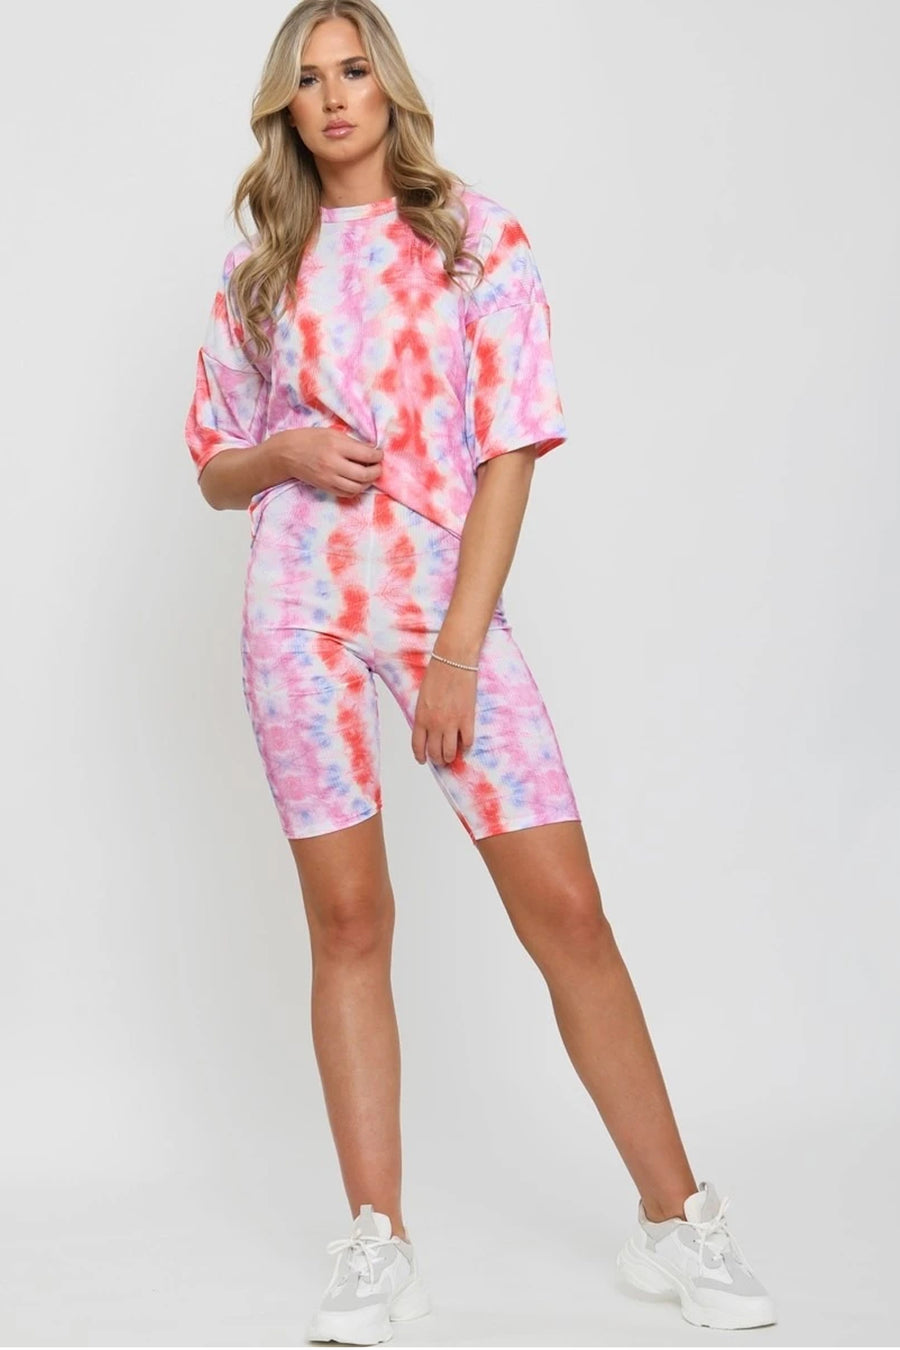 Pink Ribbed Tie Dye Top & Shorts Set - Annie